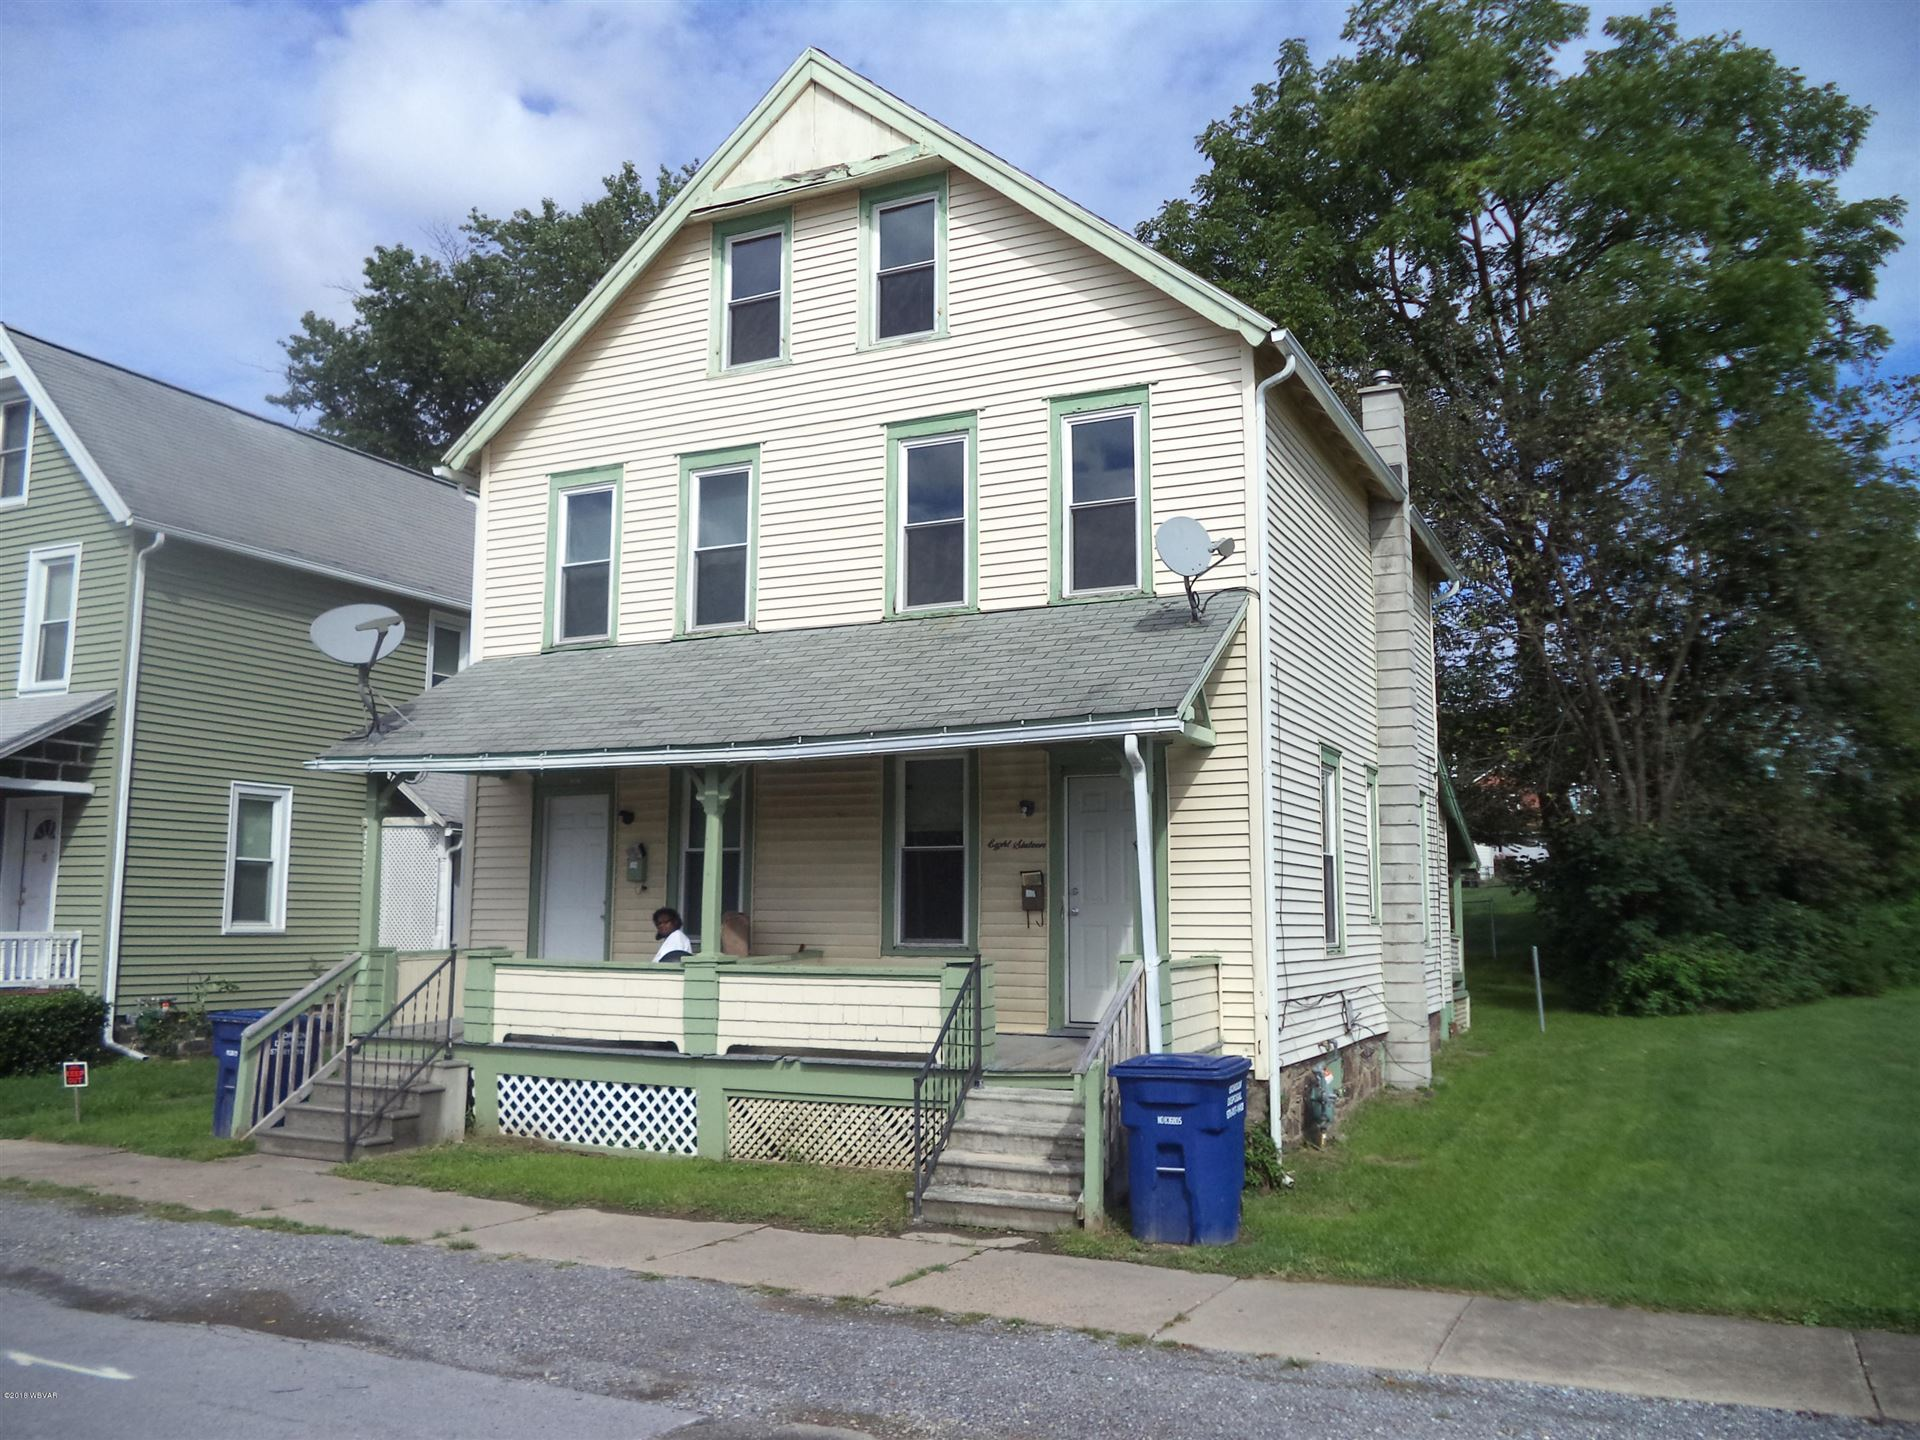 816-818 LOCUST STREET, Williamsport, PA 17701 - #: WB-92076